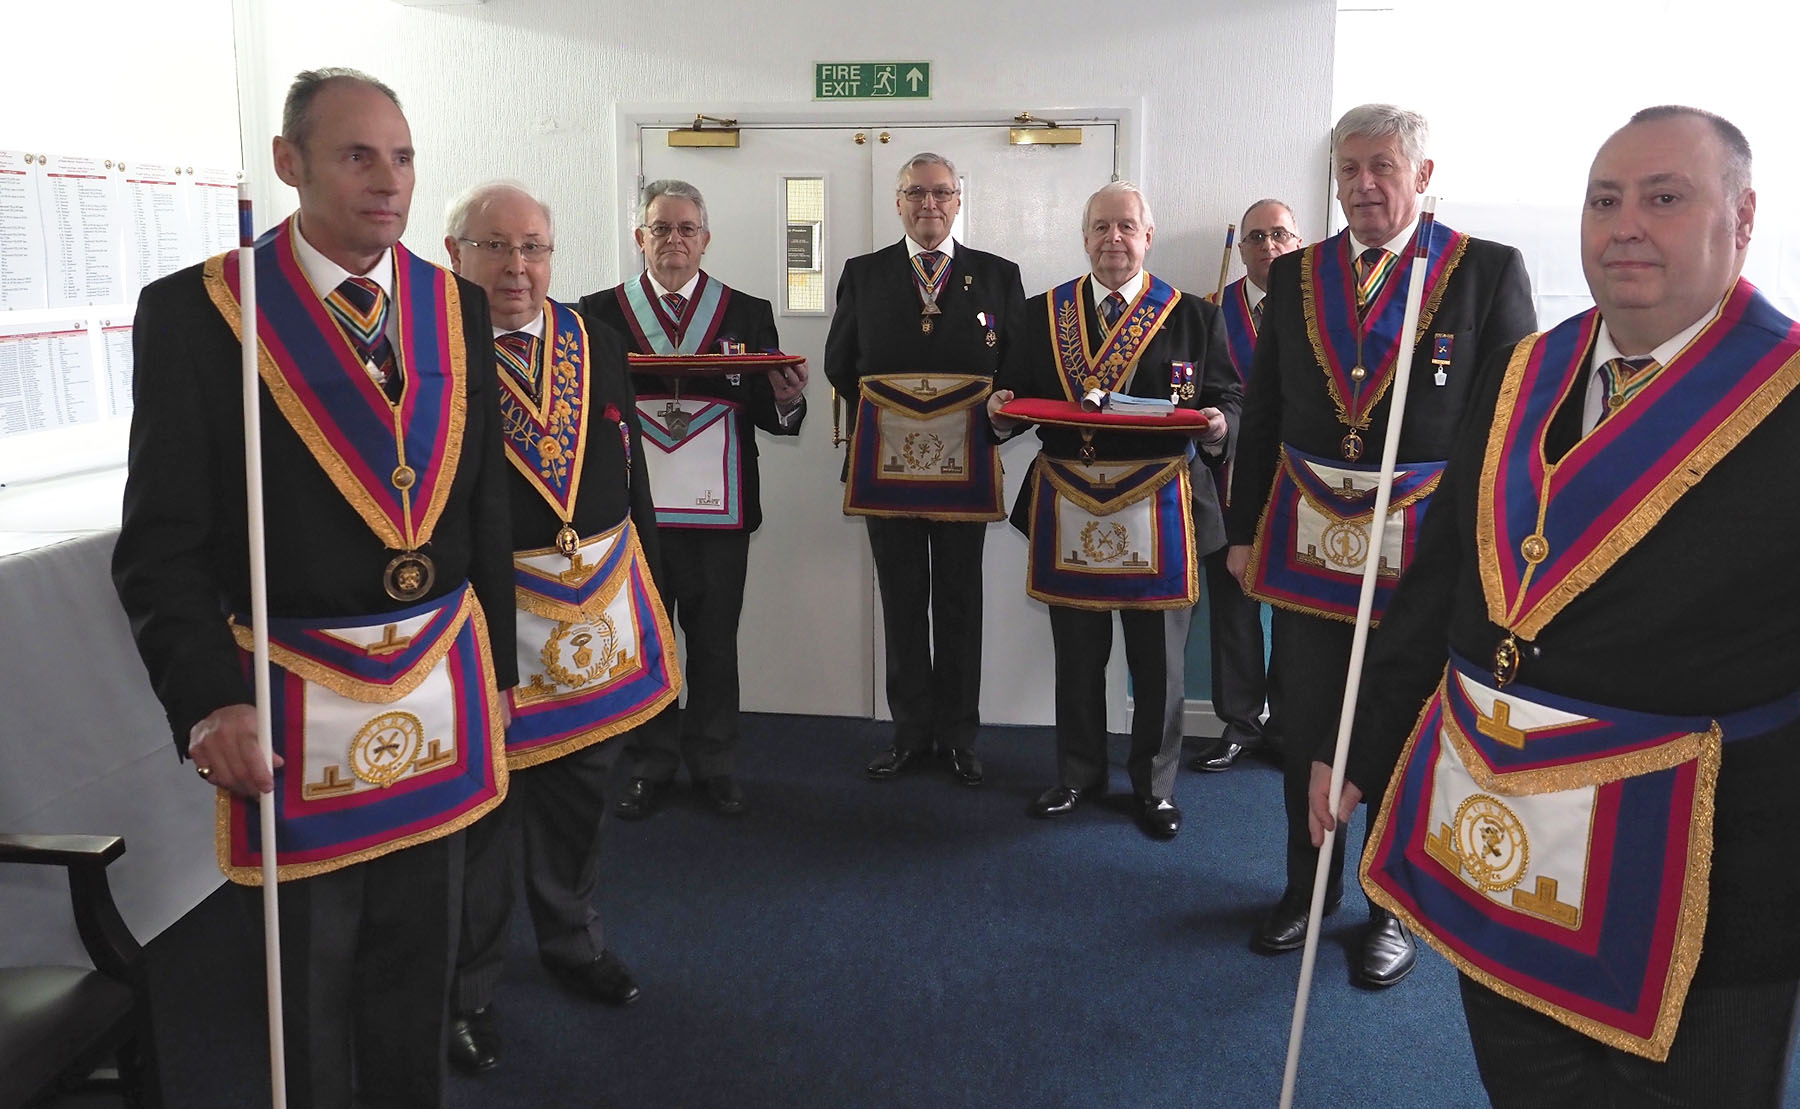 The 2019 Annual Meeting of Provincial Grand Lodge